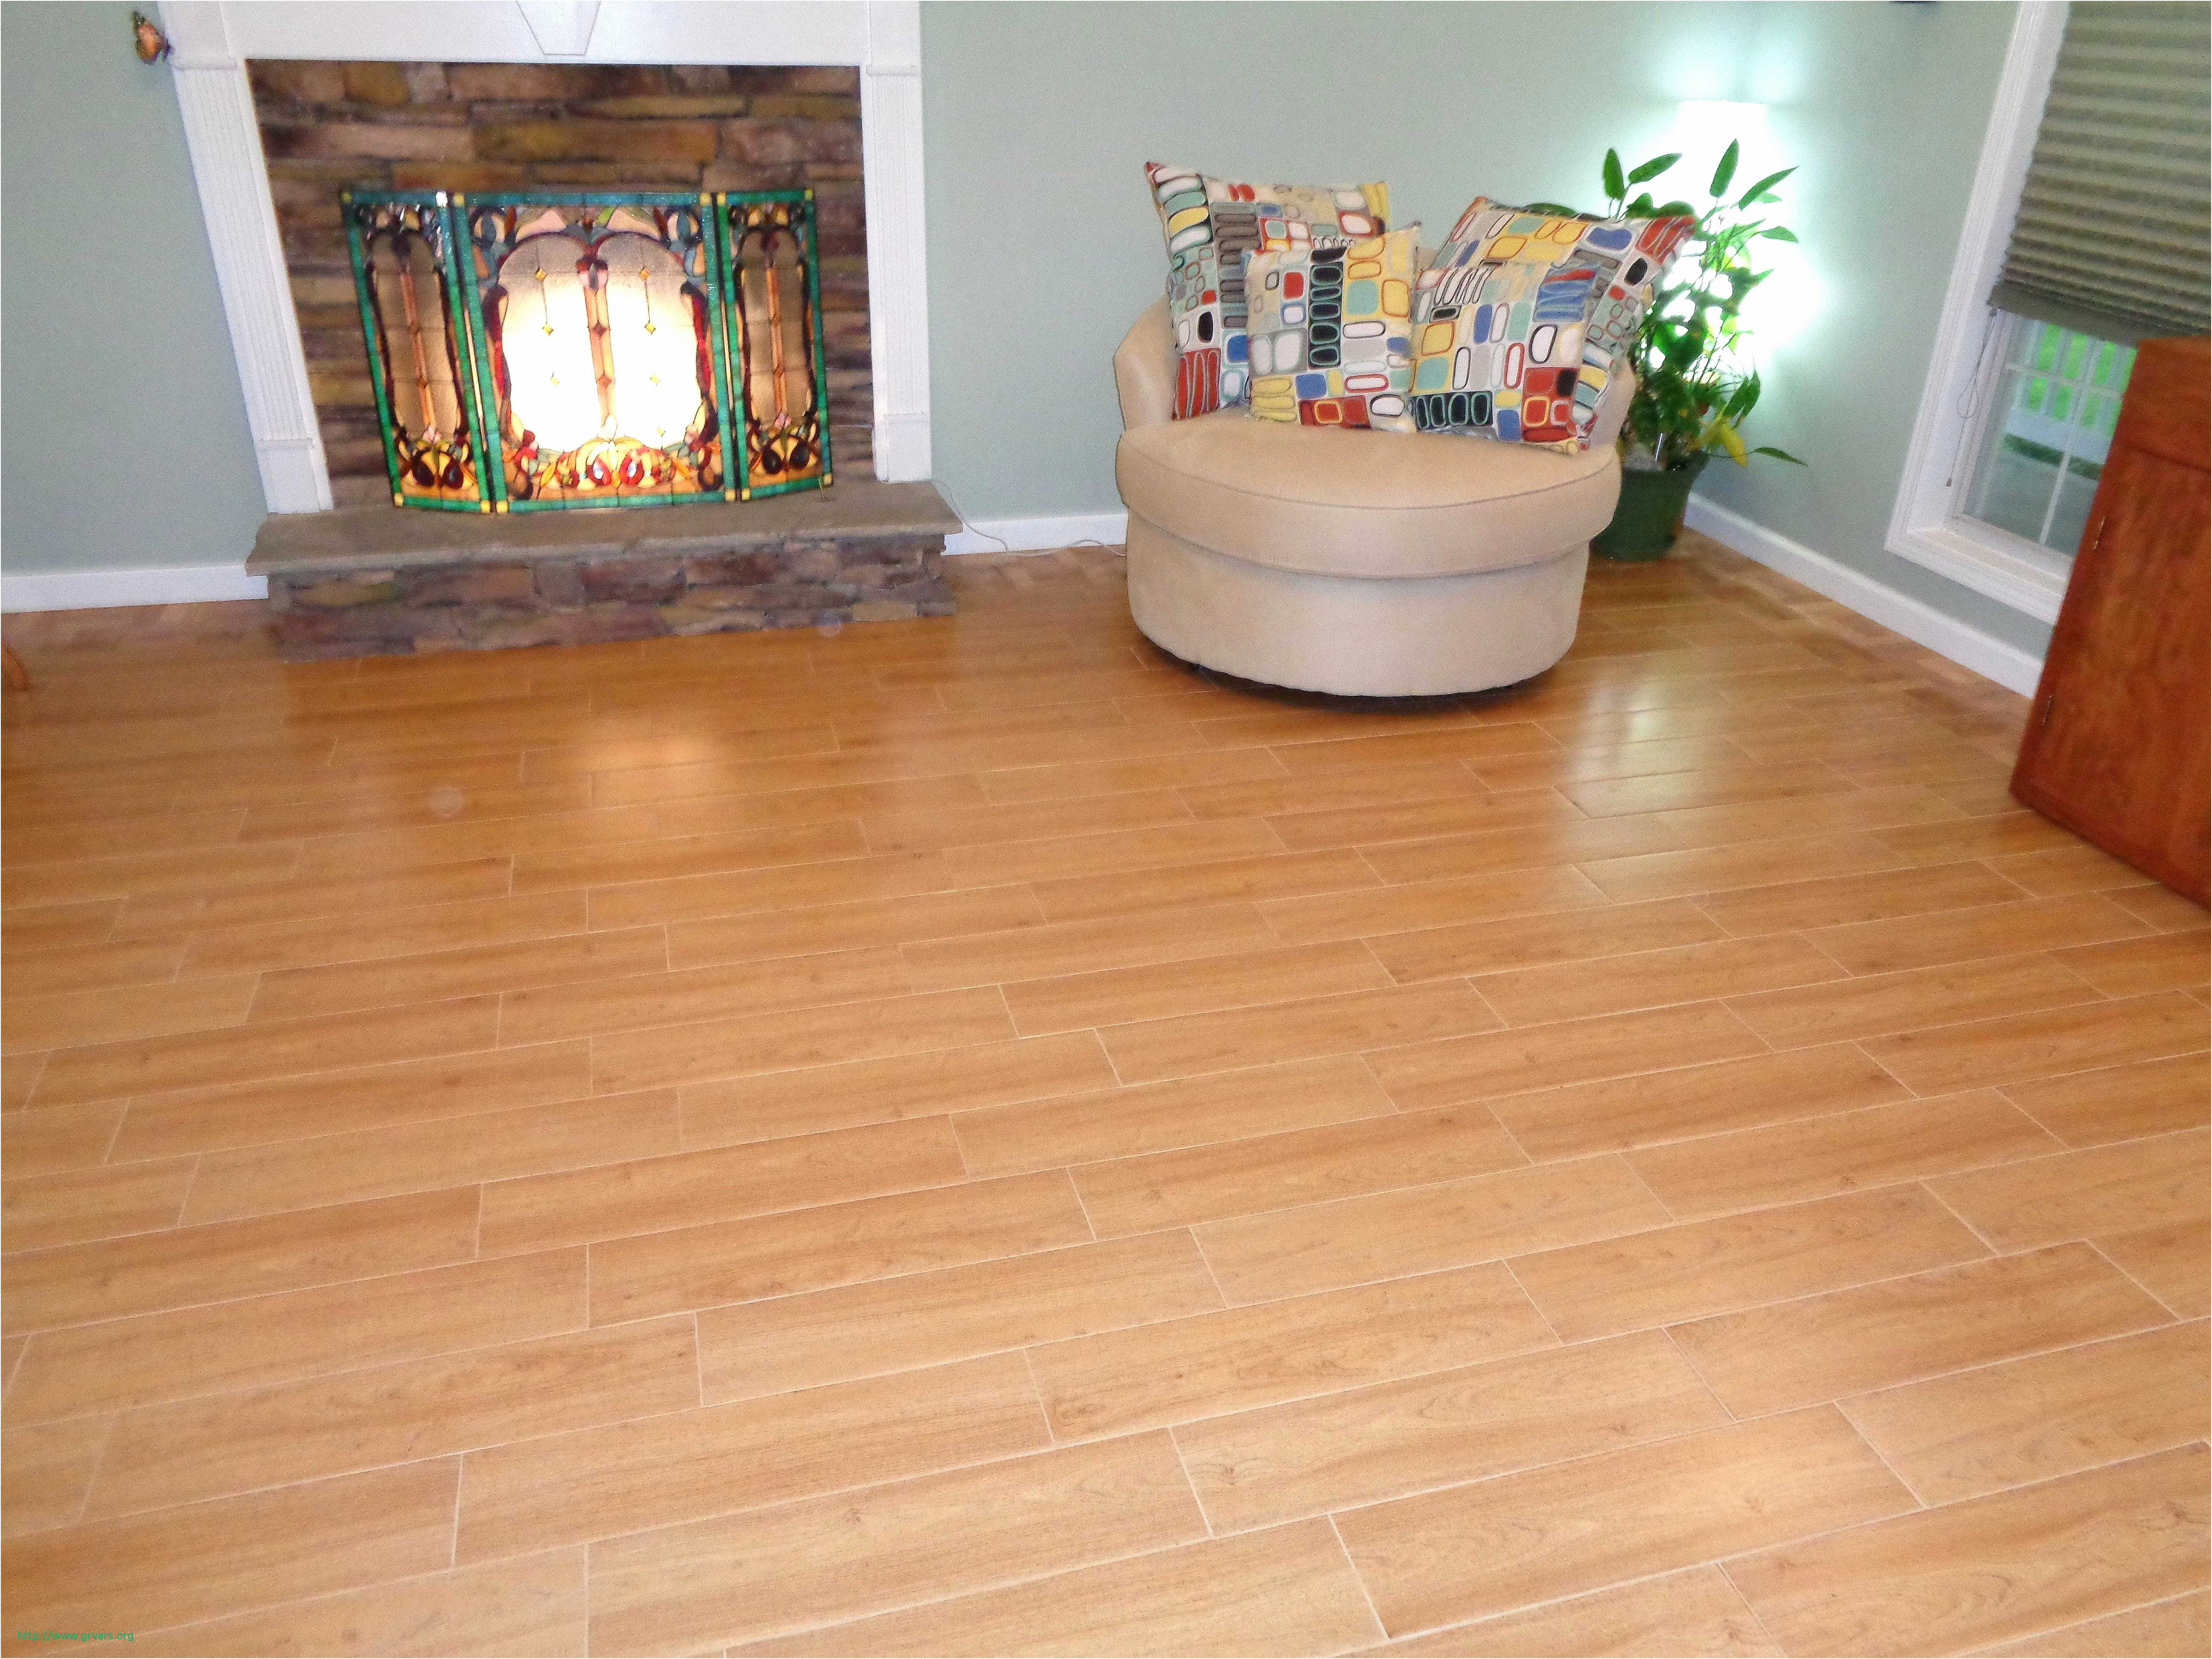 fake hardwood floor options of 20 impressionnant cheapest place to buy hardwood flooring ideas blog inside cheapest place to buy hardwood flooring inspirant laminated wooden flooring prices guide to solid hardwood floors